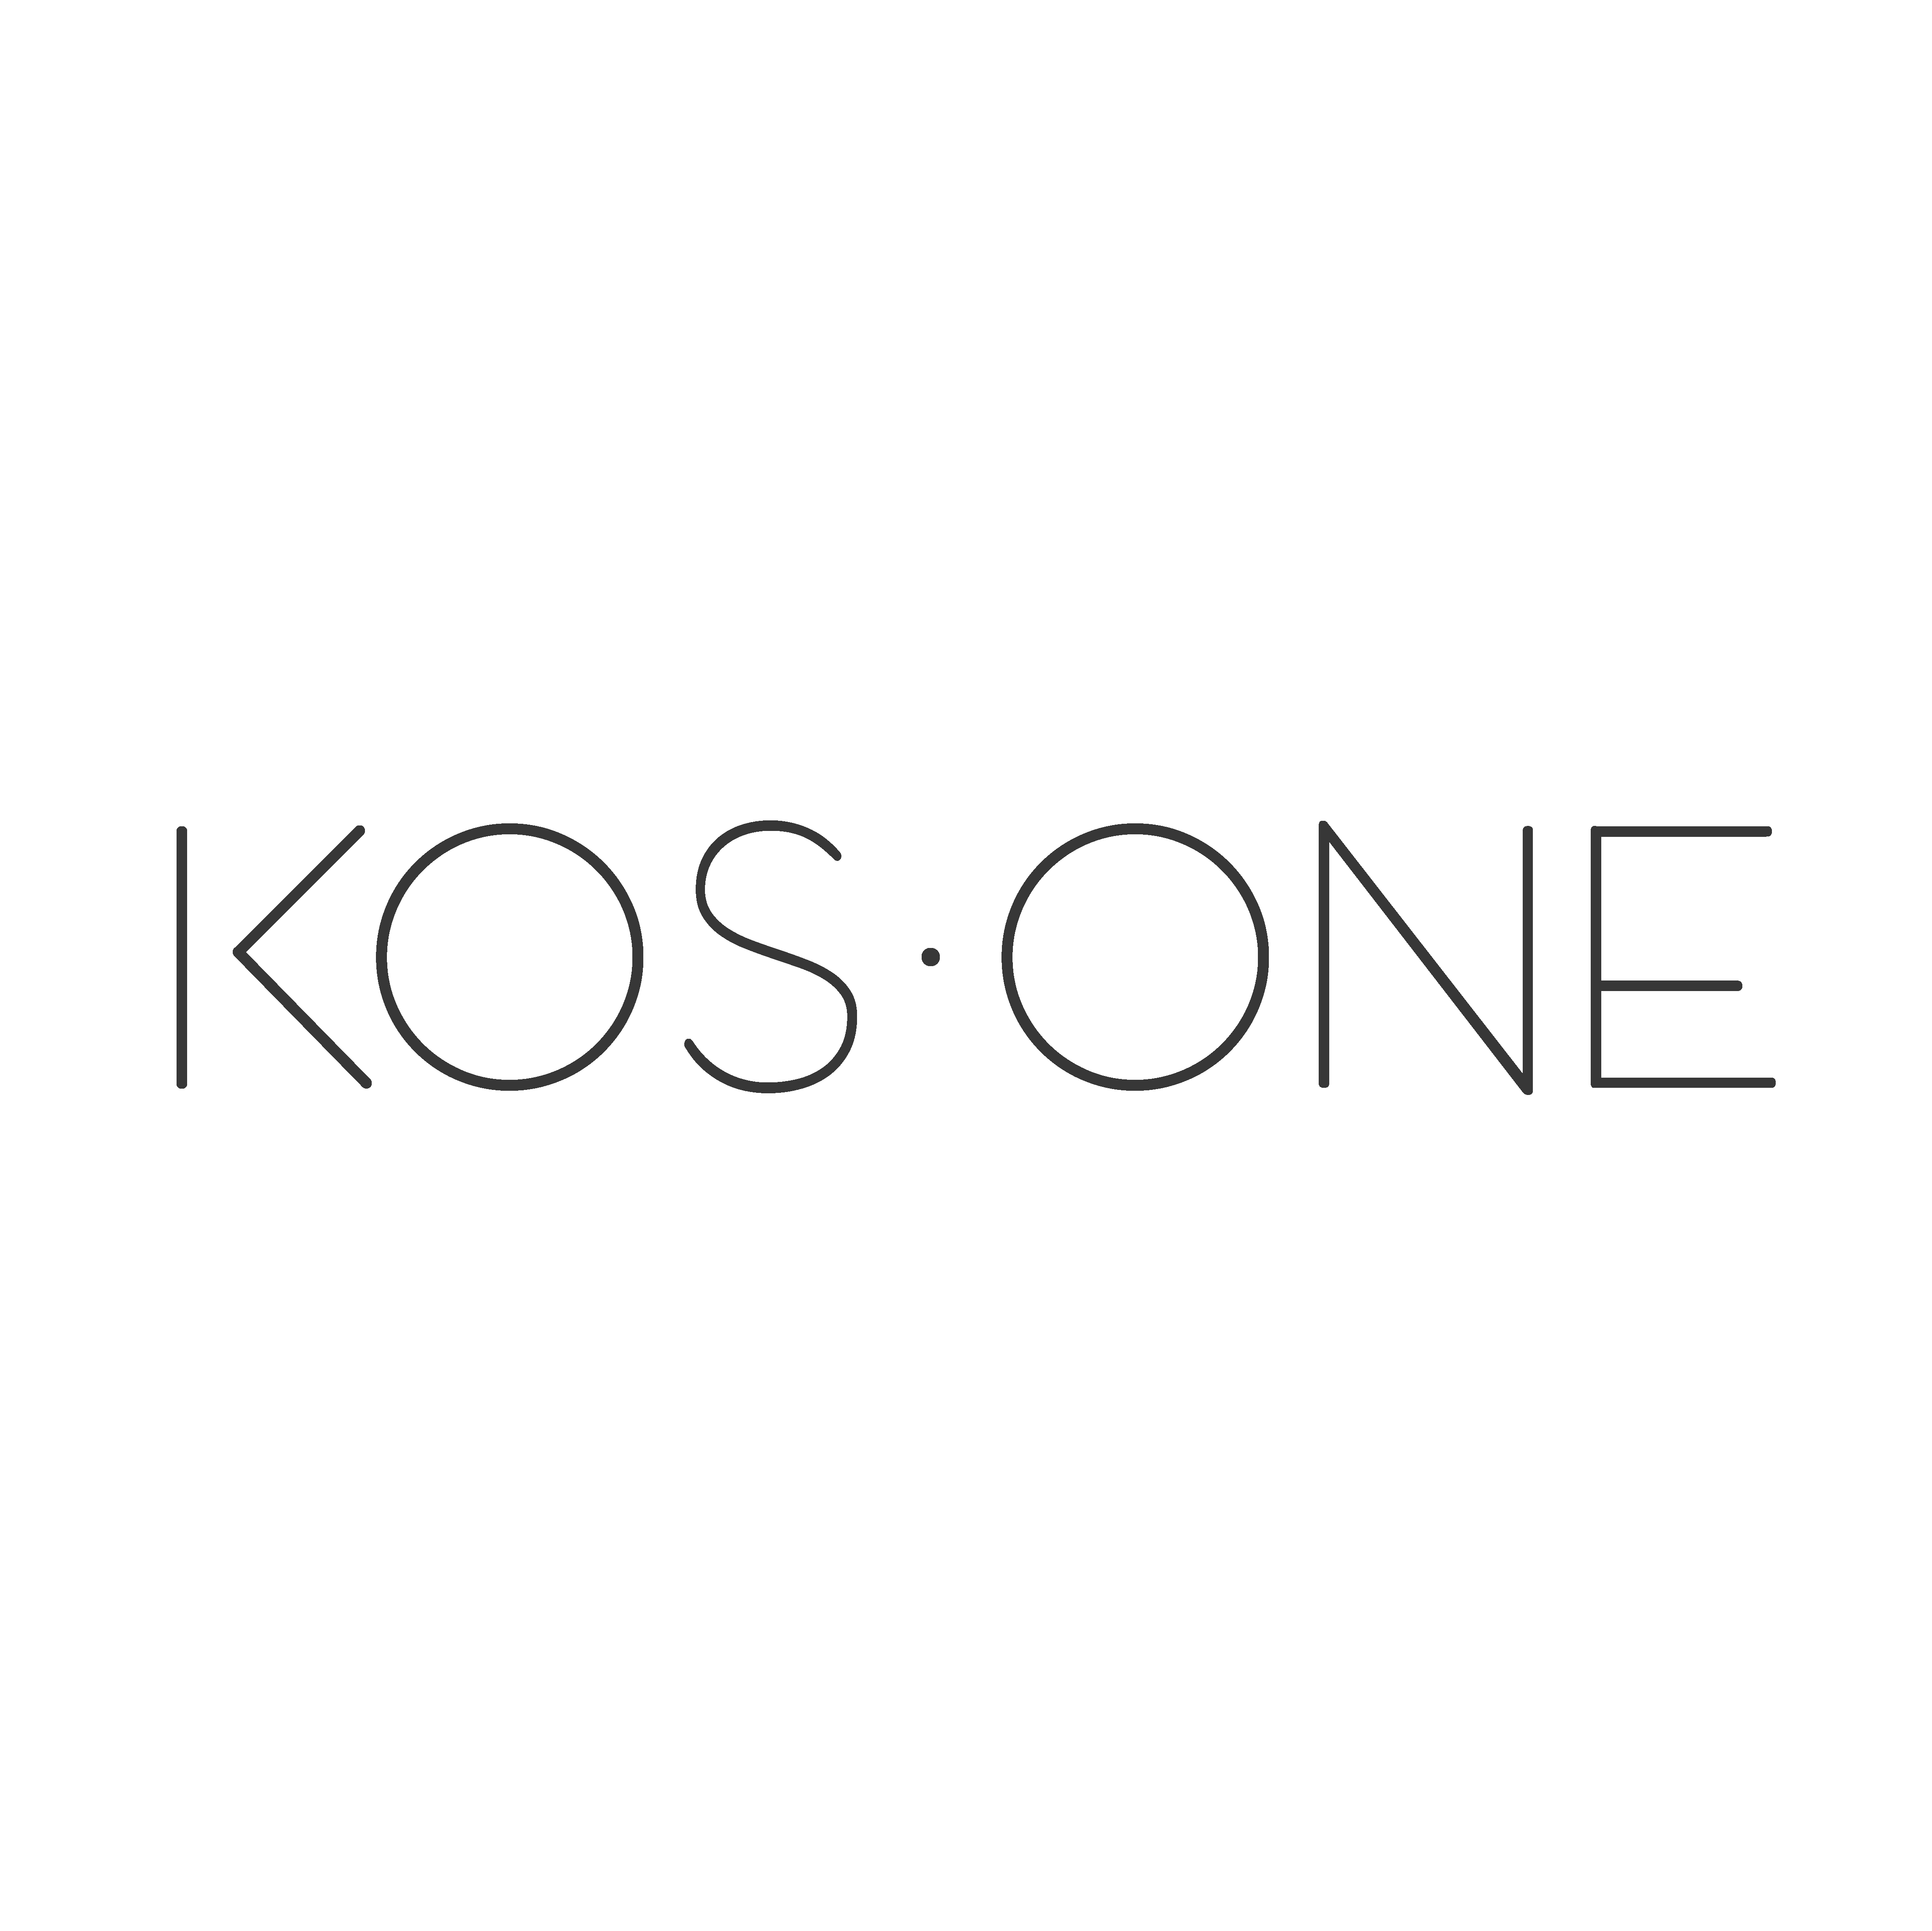 Kosone Logo Website